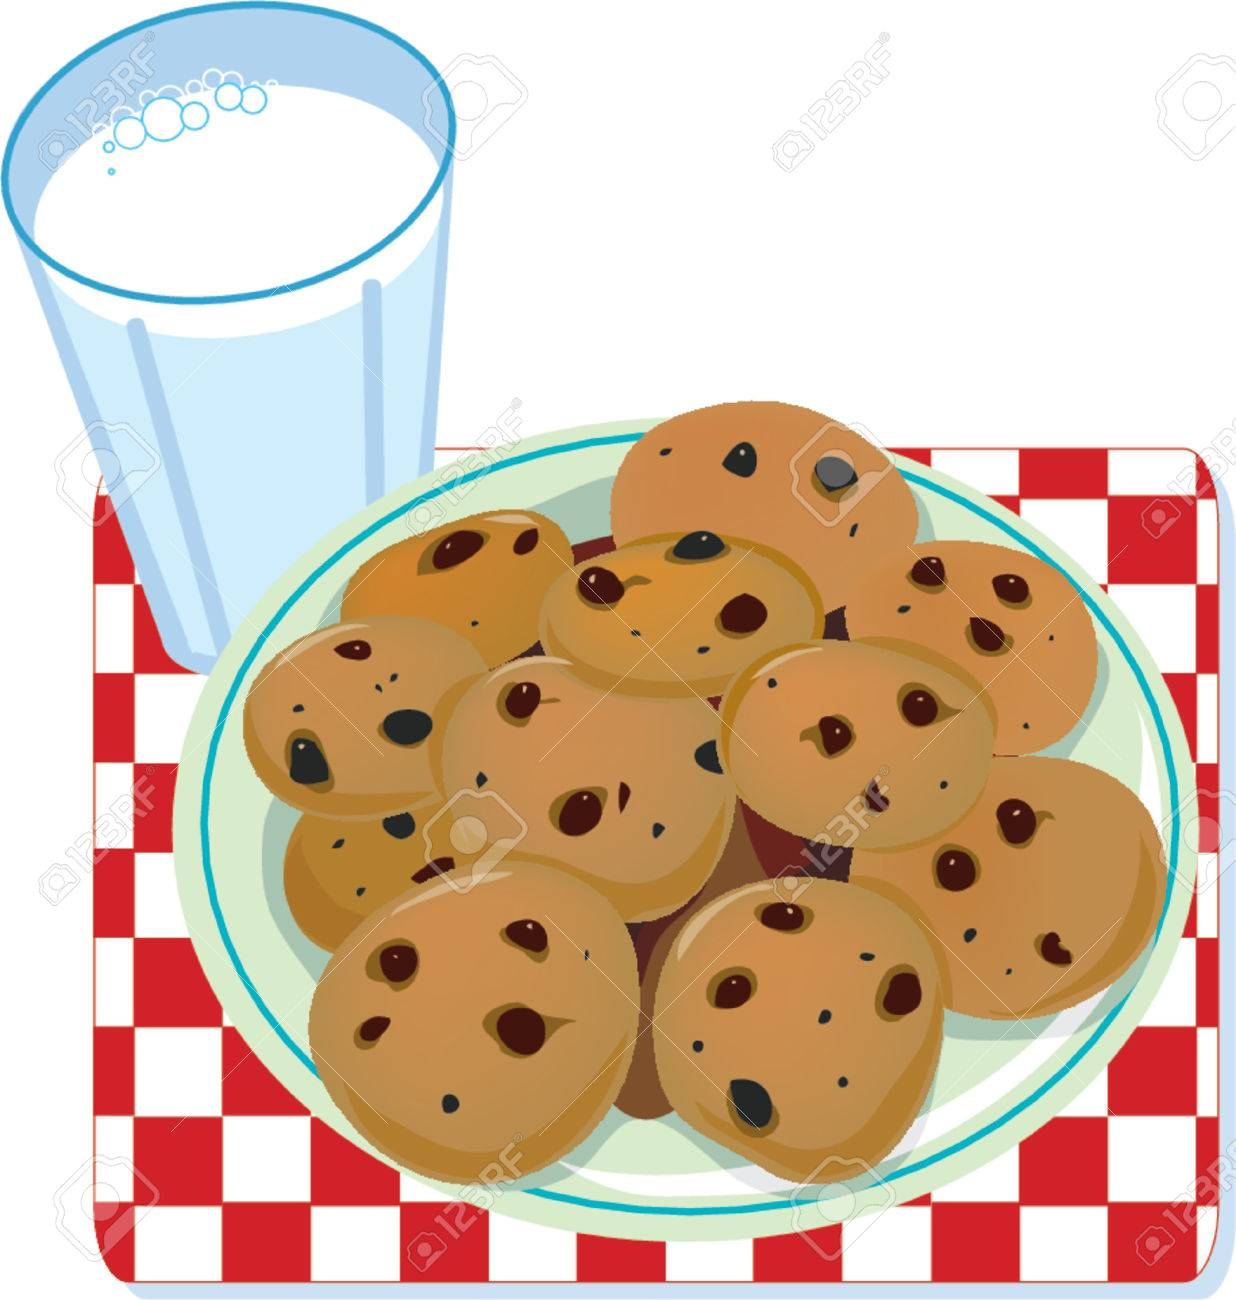 Plate of cookies clipart 5 » Clipart Station.